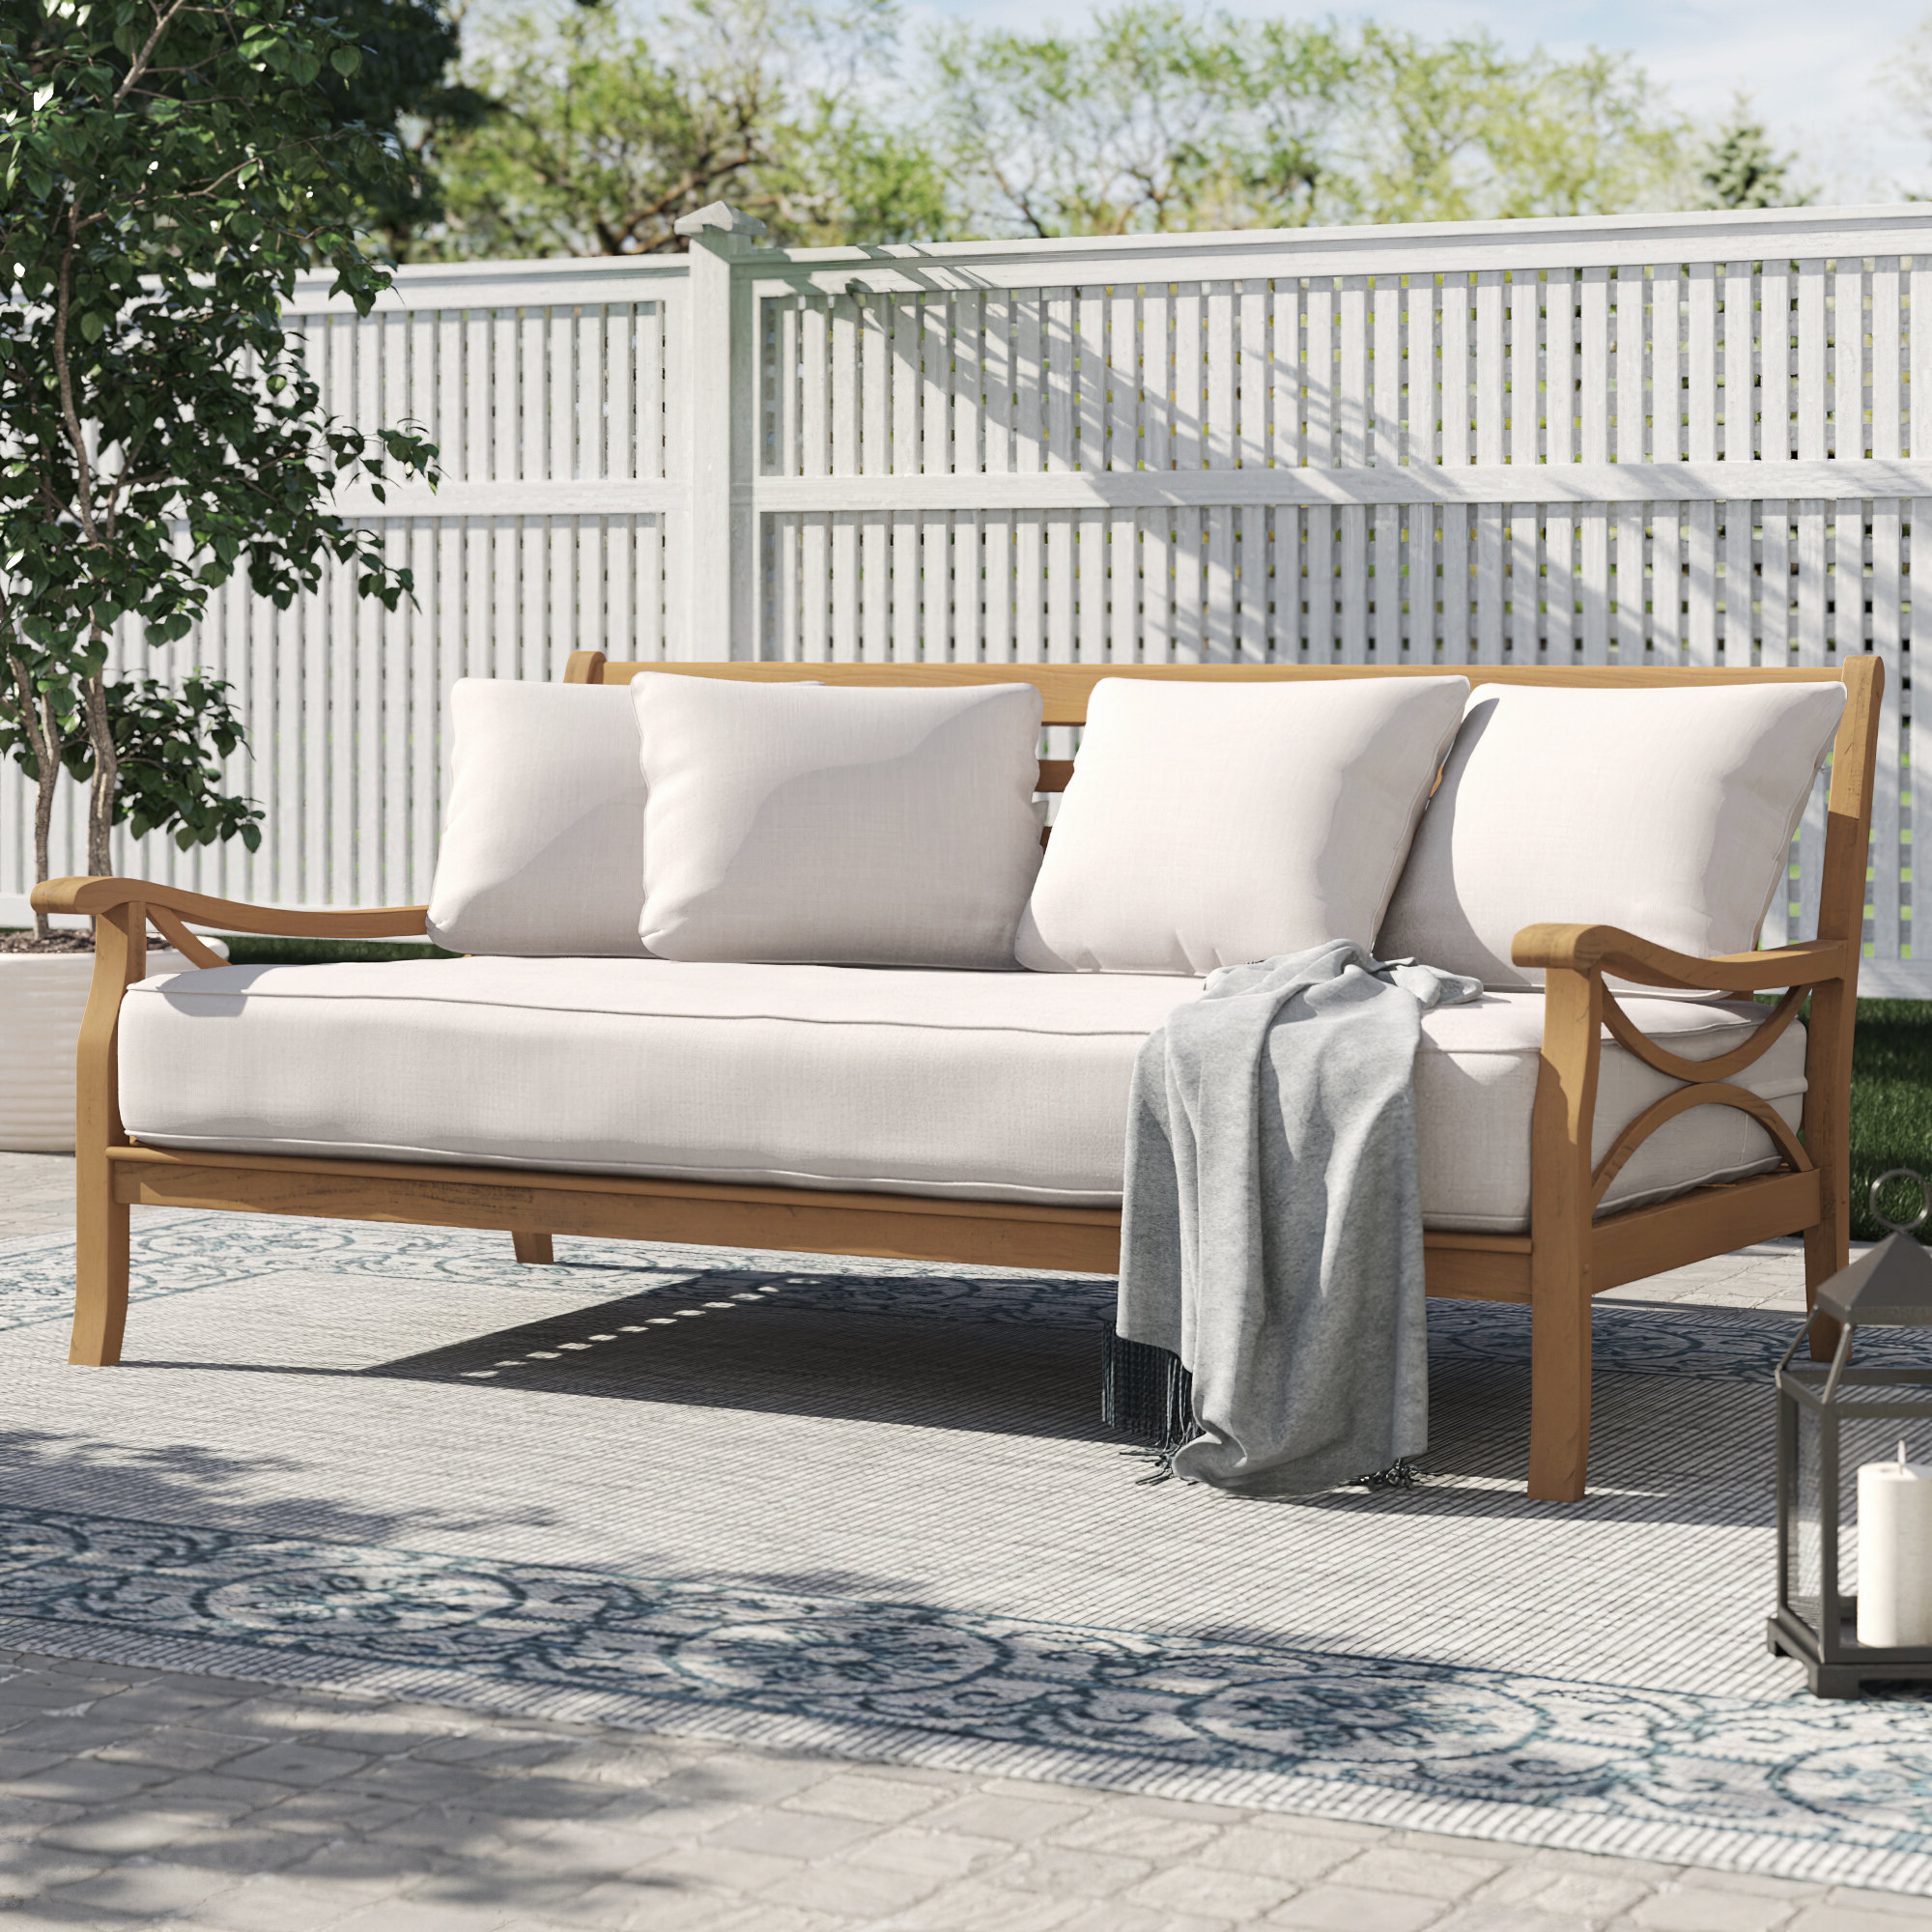 Best And Newest Bodine Patio Daybeds With Cushions Intended For Brunswick Teak Patio Daybed With Cushions (View 4 of 25)